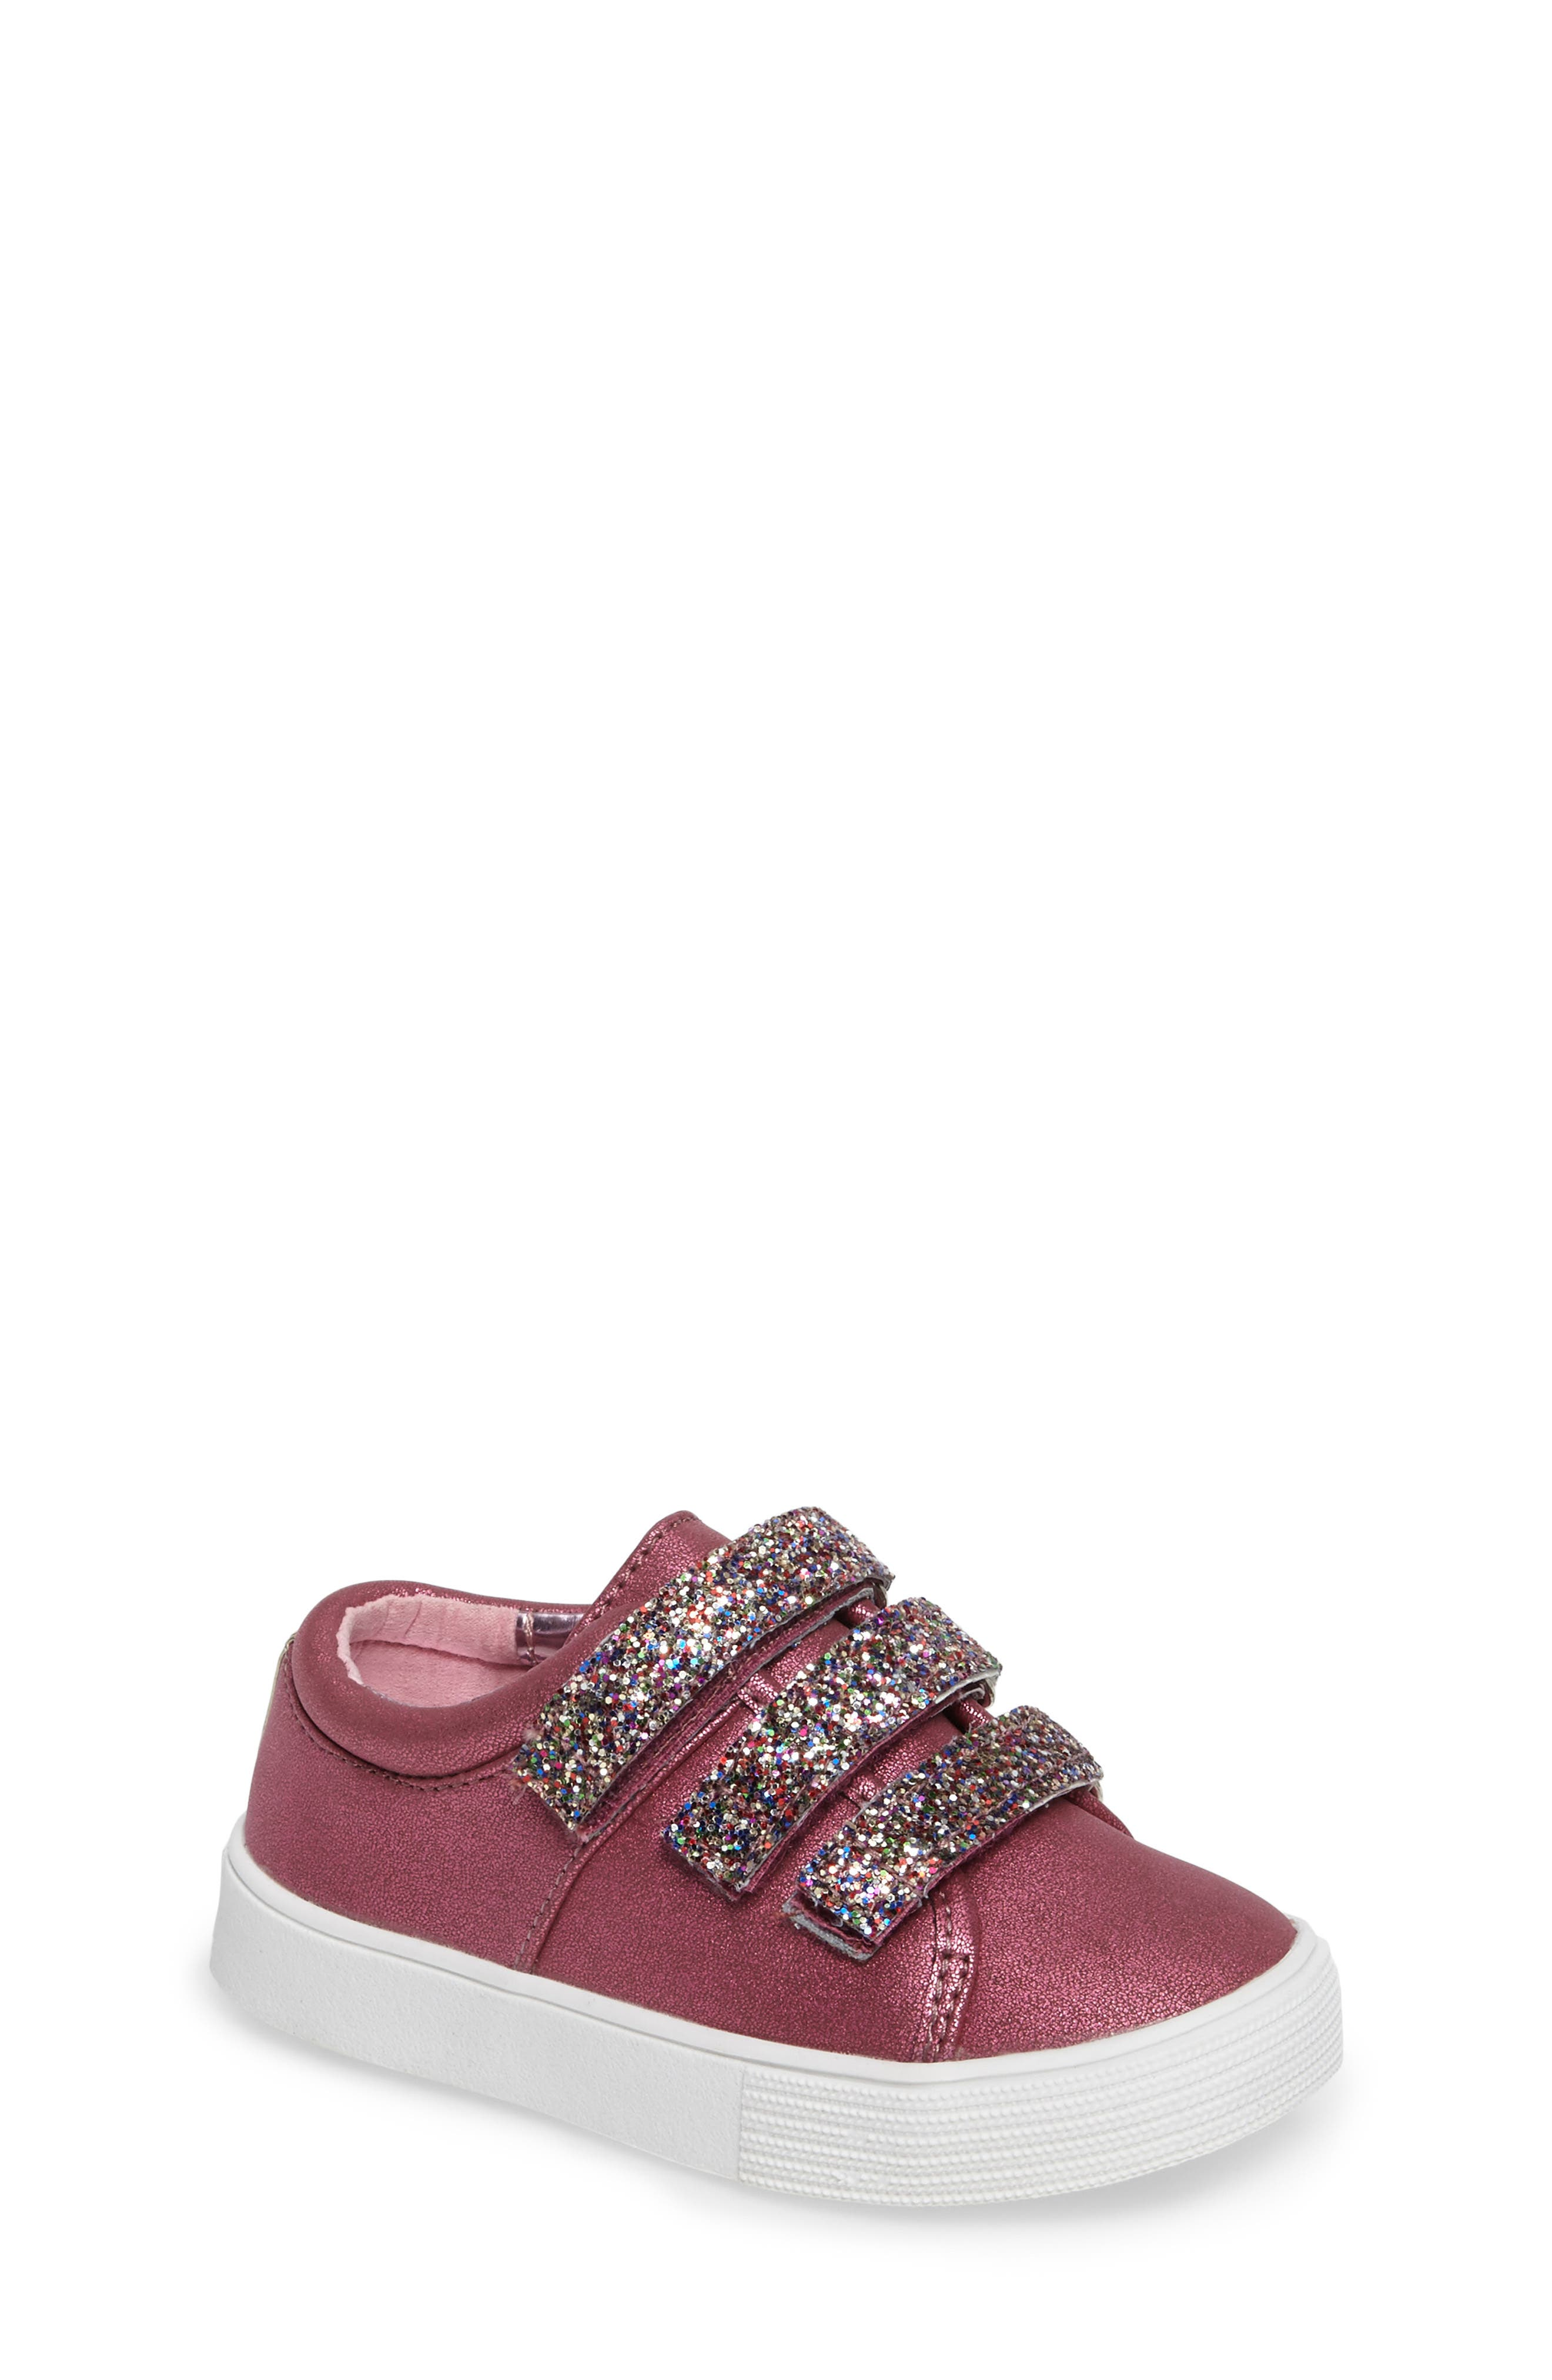 Main Image - Kenneth Cole New York Kam Glitter Strap Sneaker (Walker & Toddler)